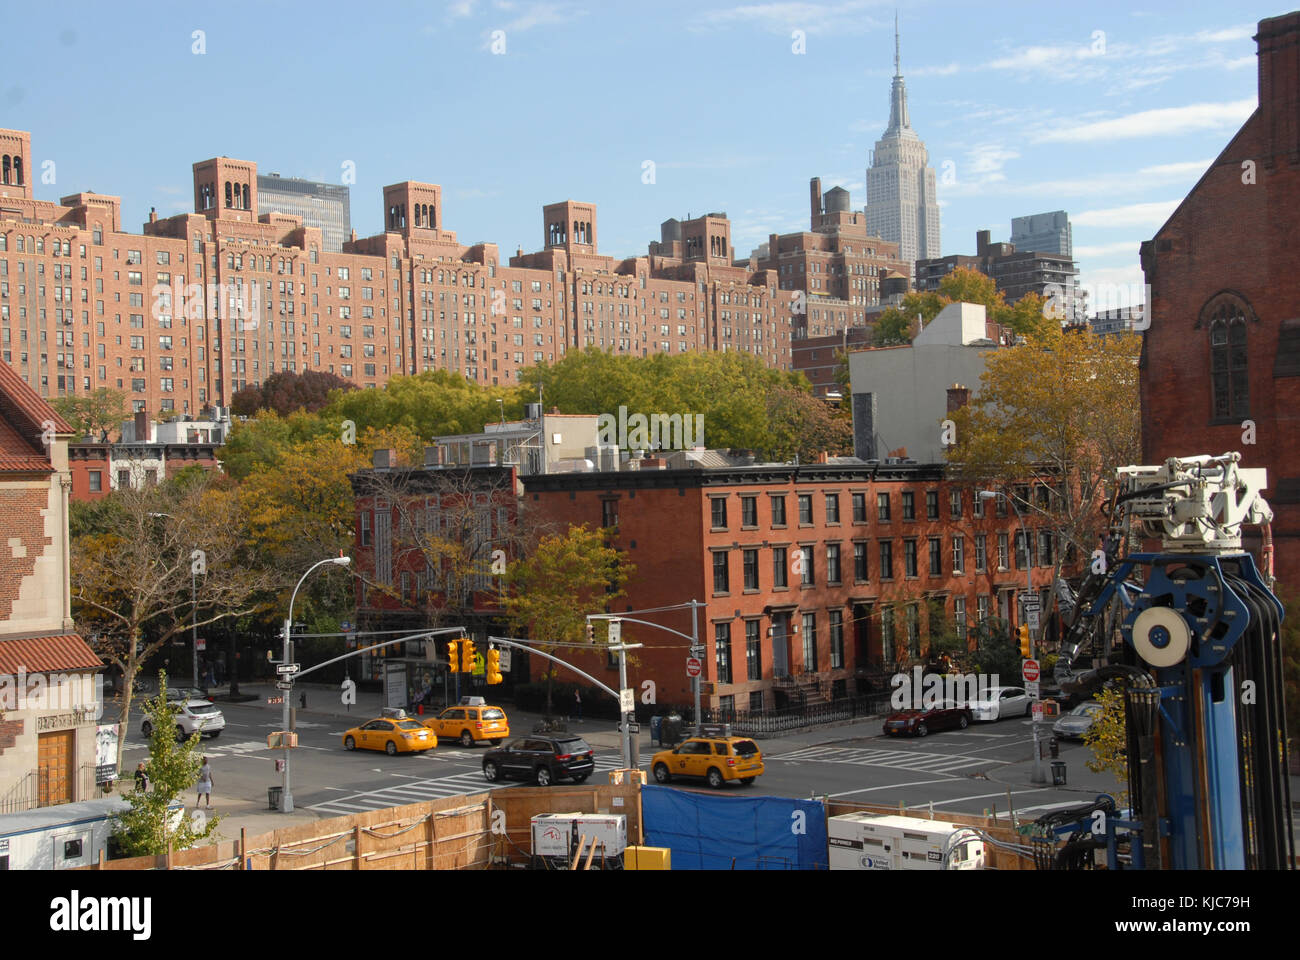 Traffic and work in progress in New York - Stock Image